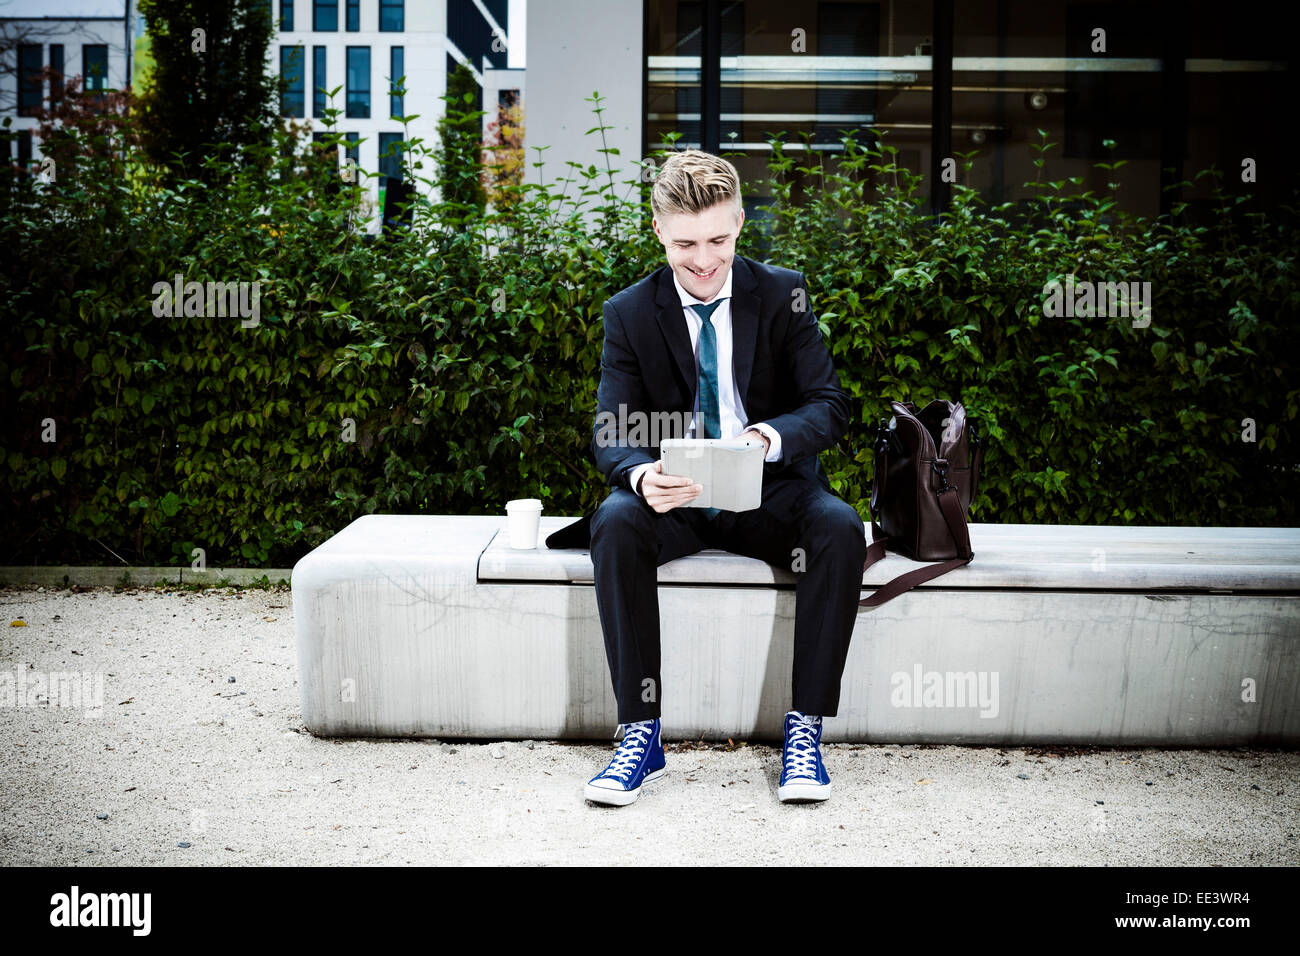 Young businessman using digital tablet outdoors, Munich, Bavaria, Germany - Stock Image